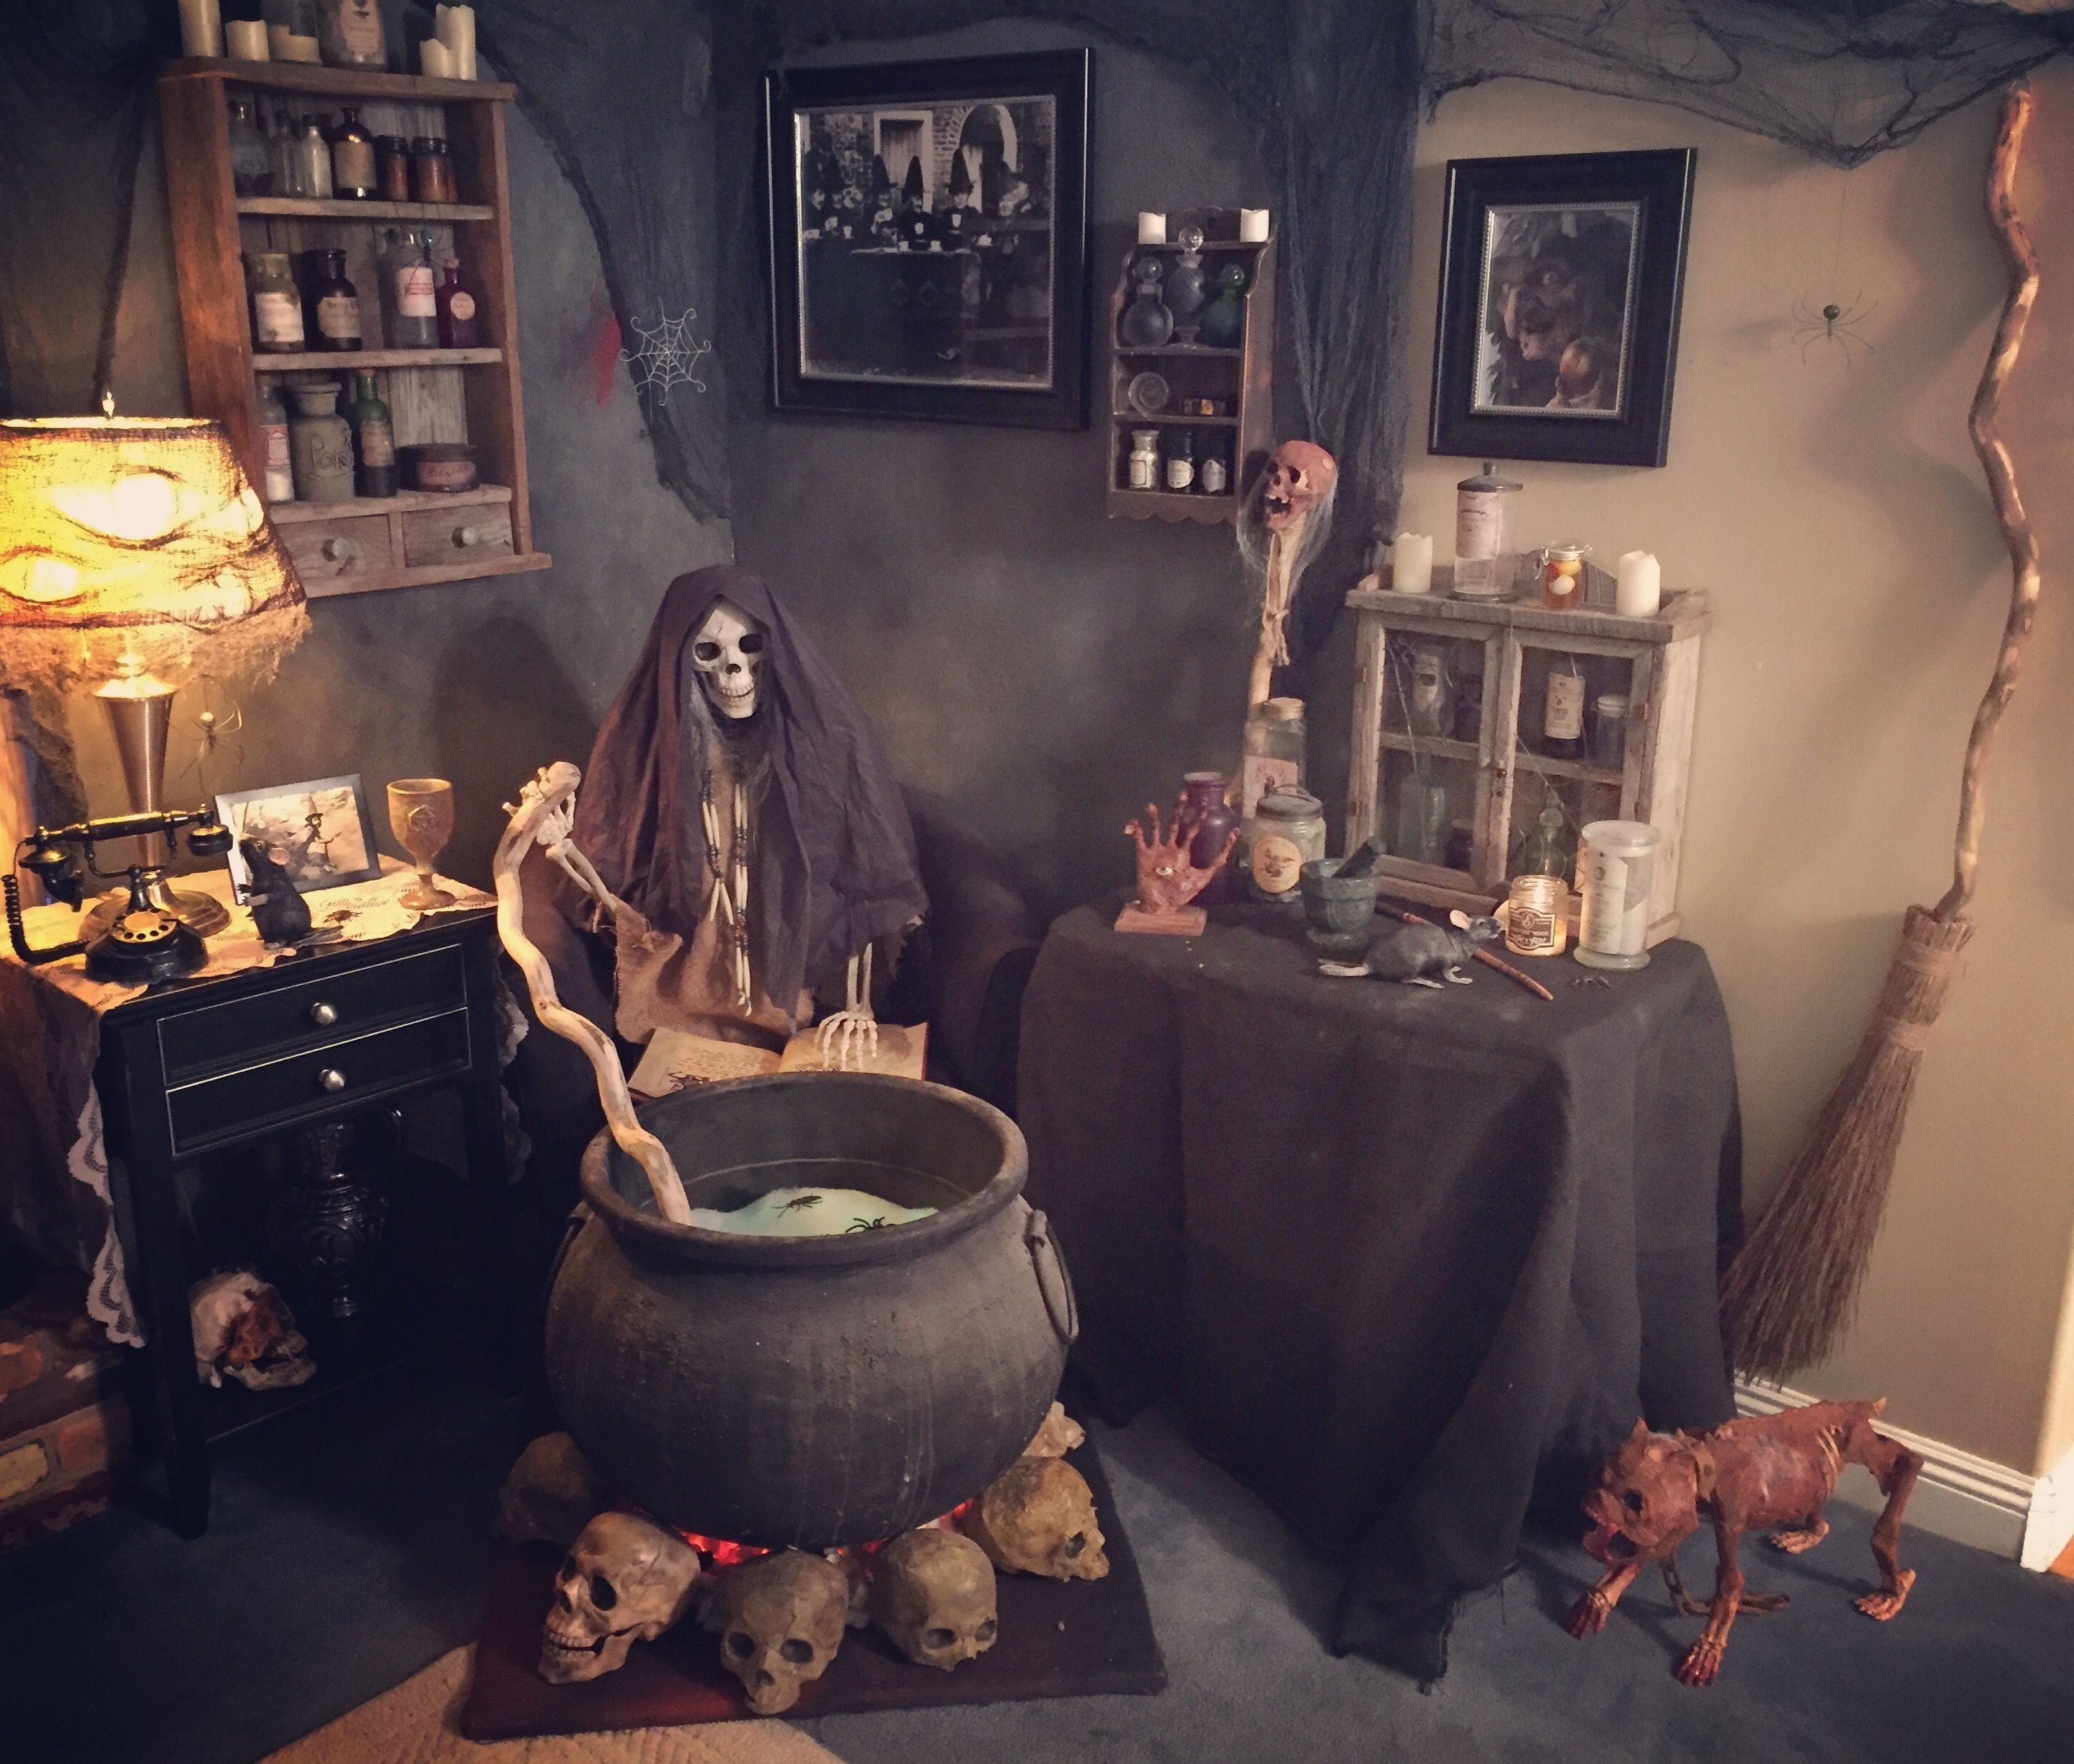 While we receive compensation when you click links to pa. 10 Stunning Scary Haunted House Room Ideas 2021